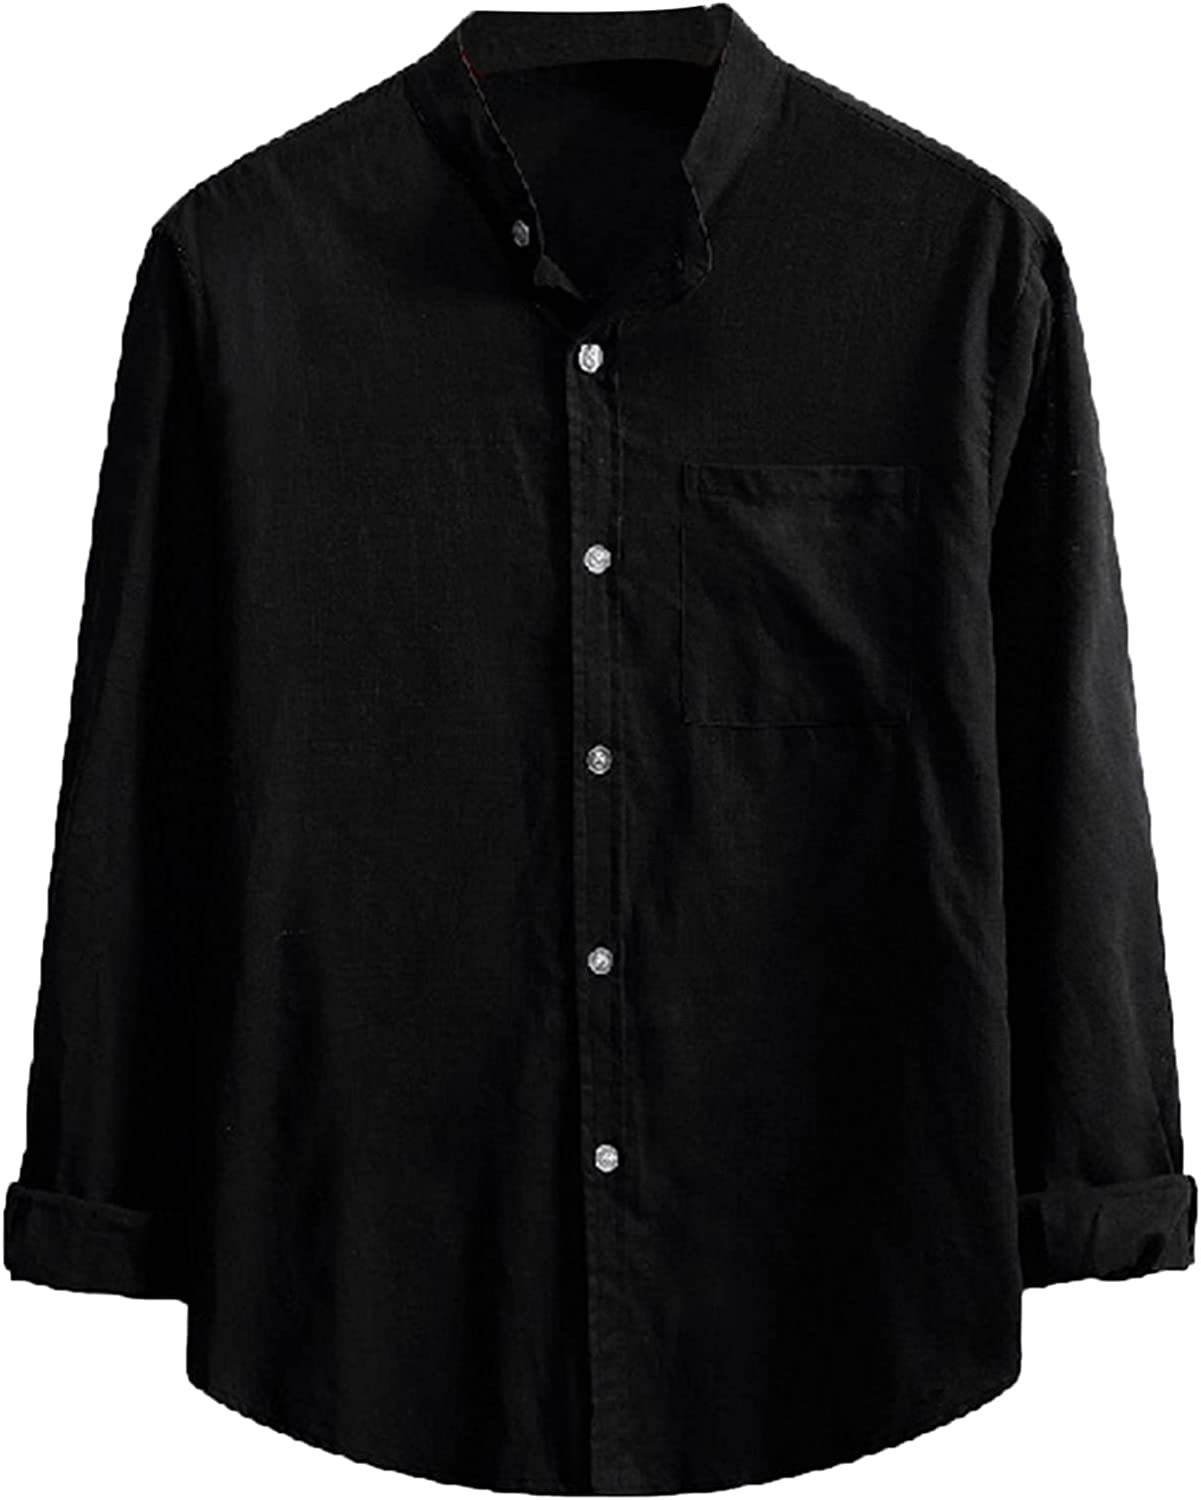 FUNEY Men's Long-Sleeve Casual Poplin Shirt Vertical Stripes Oxford Shirt Comfy Stretch Button Down Shirts with Pockets